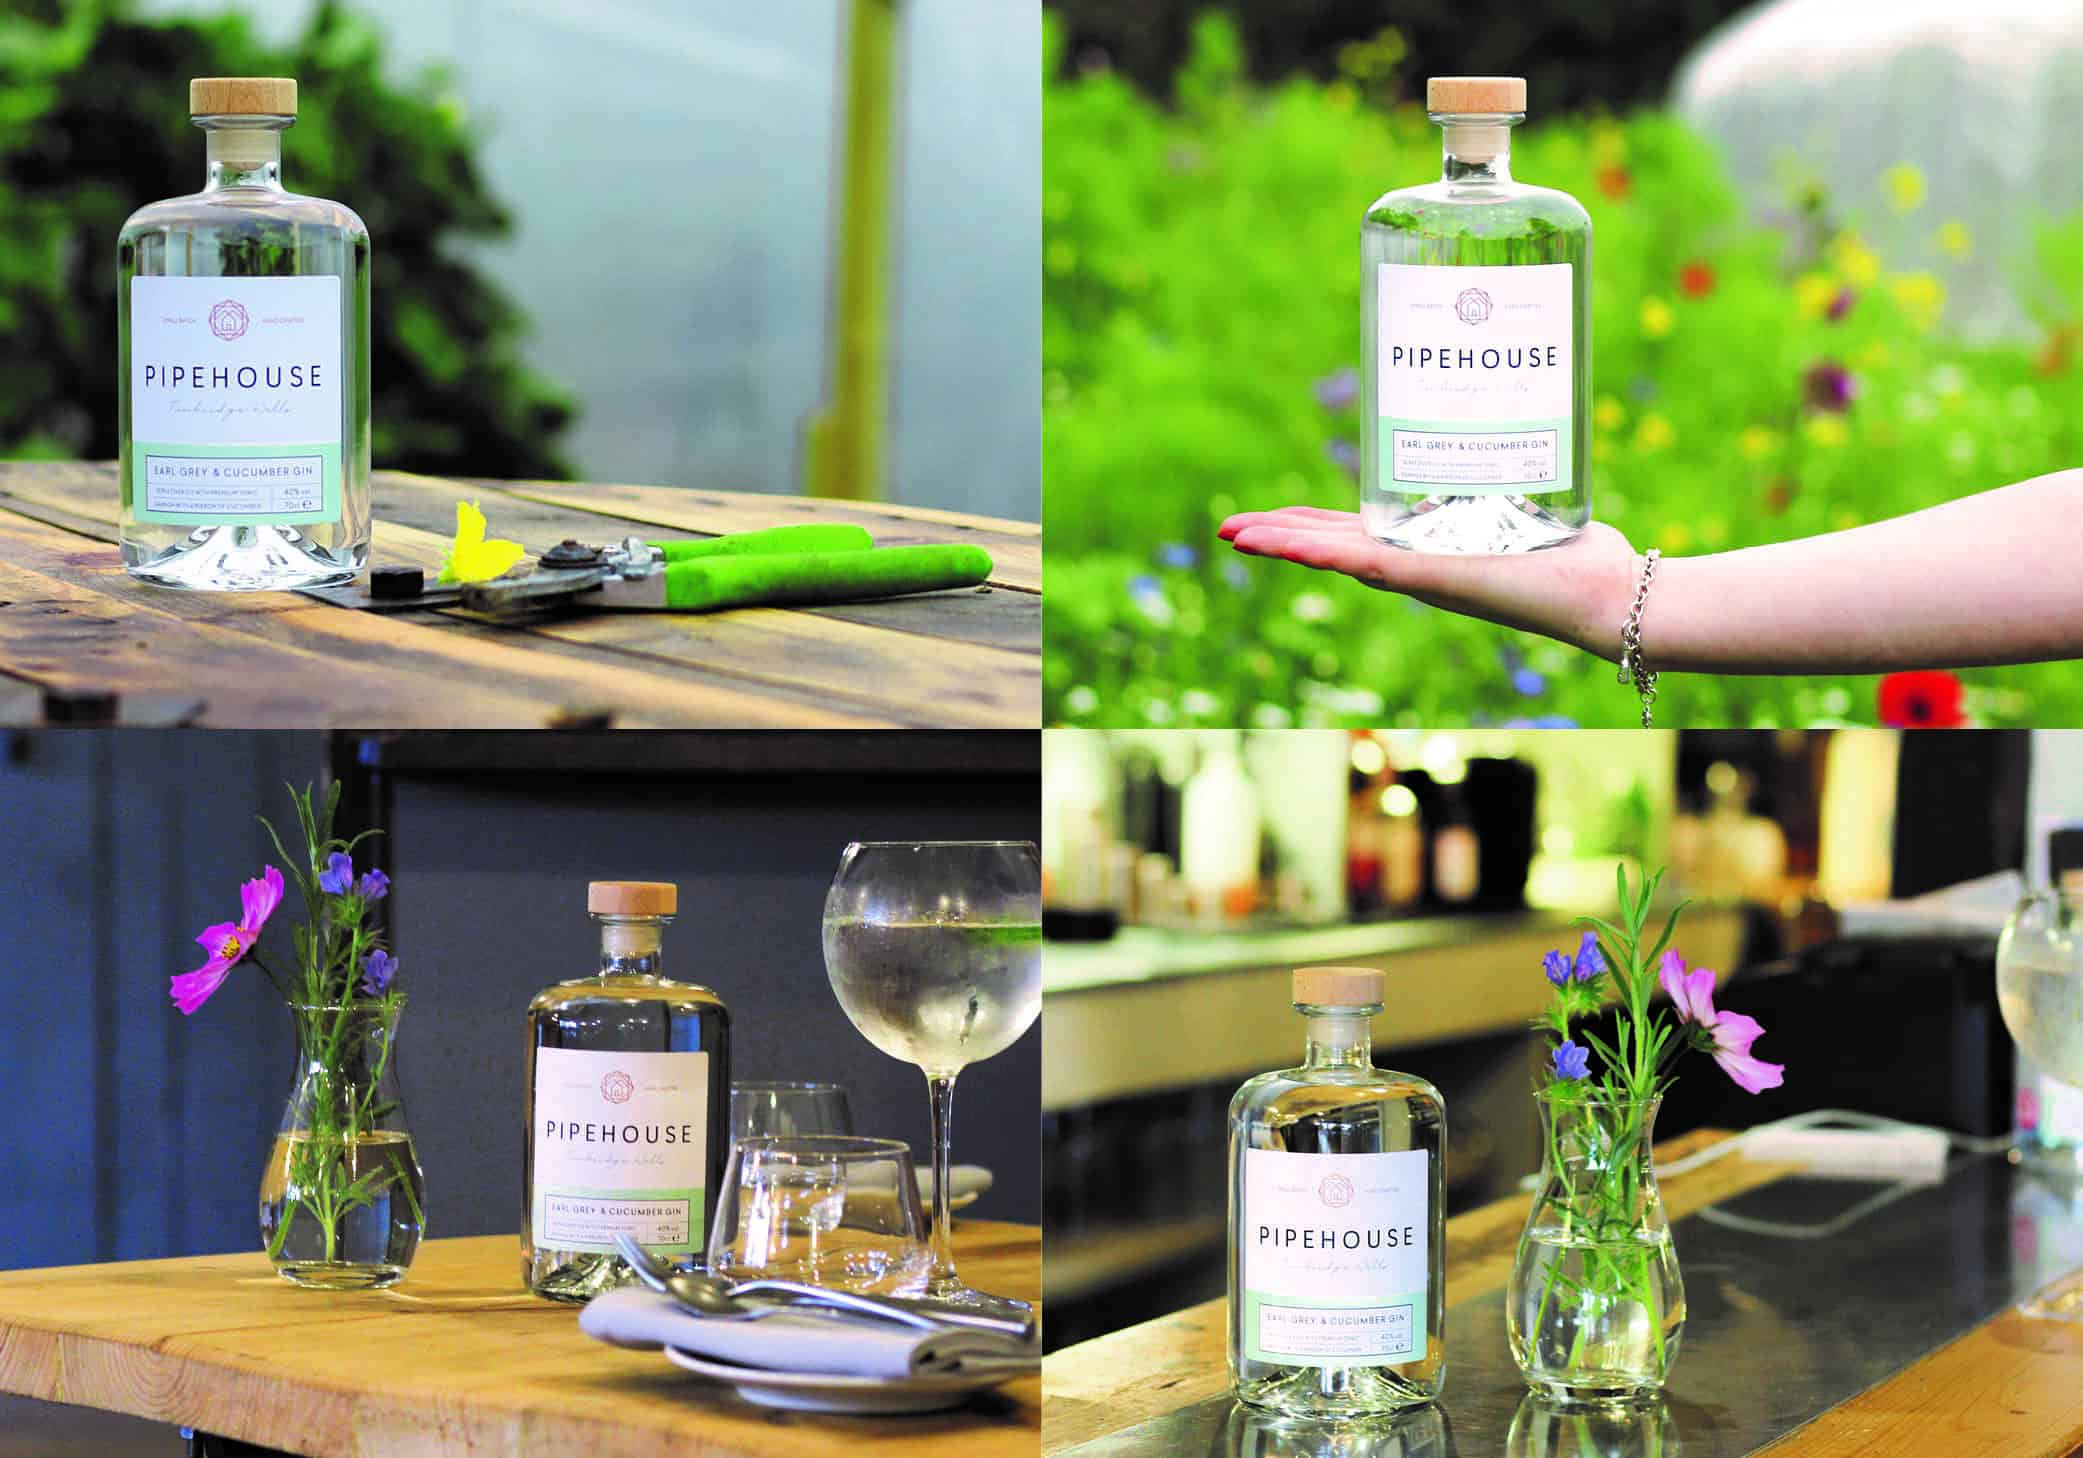 Different shots of the Pipehouse Kent gin bottle at The Small Holding